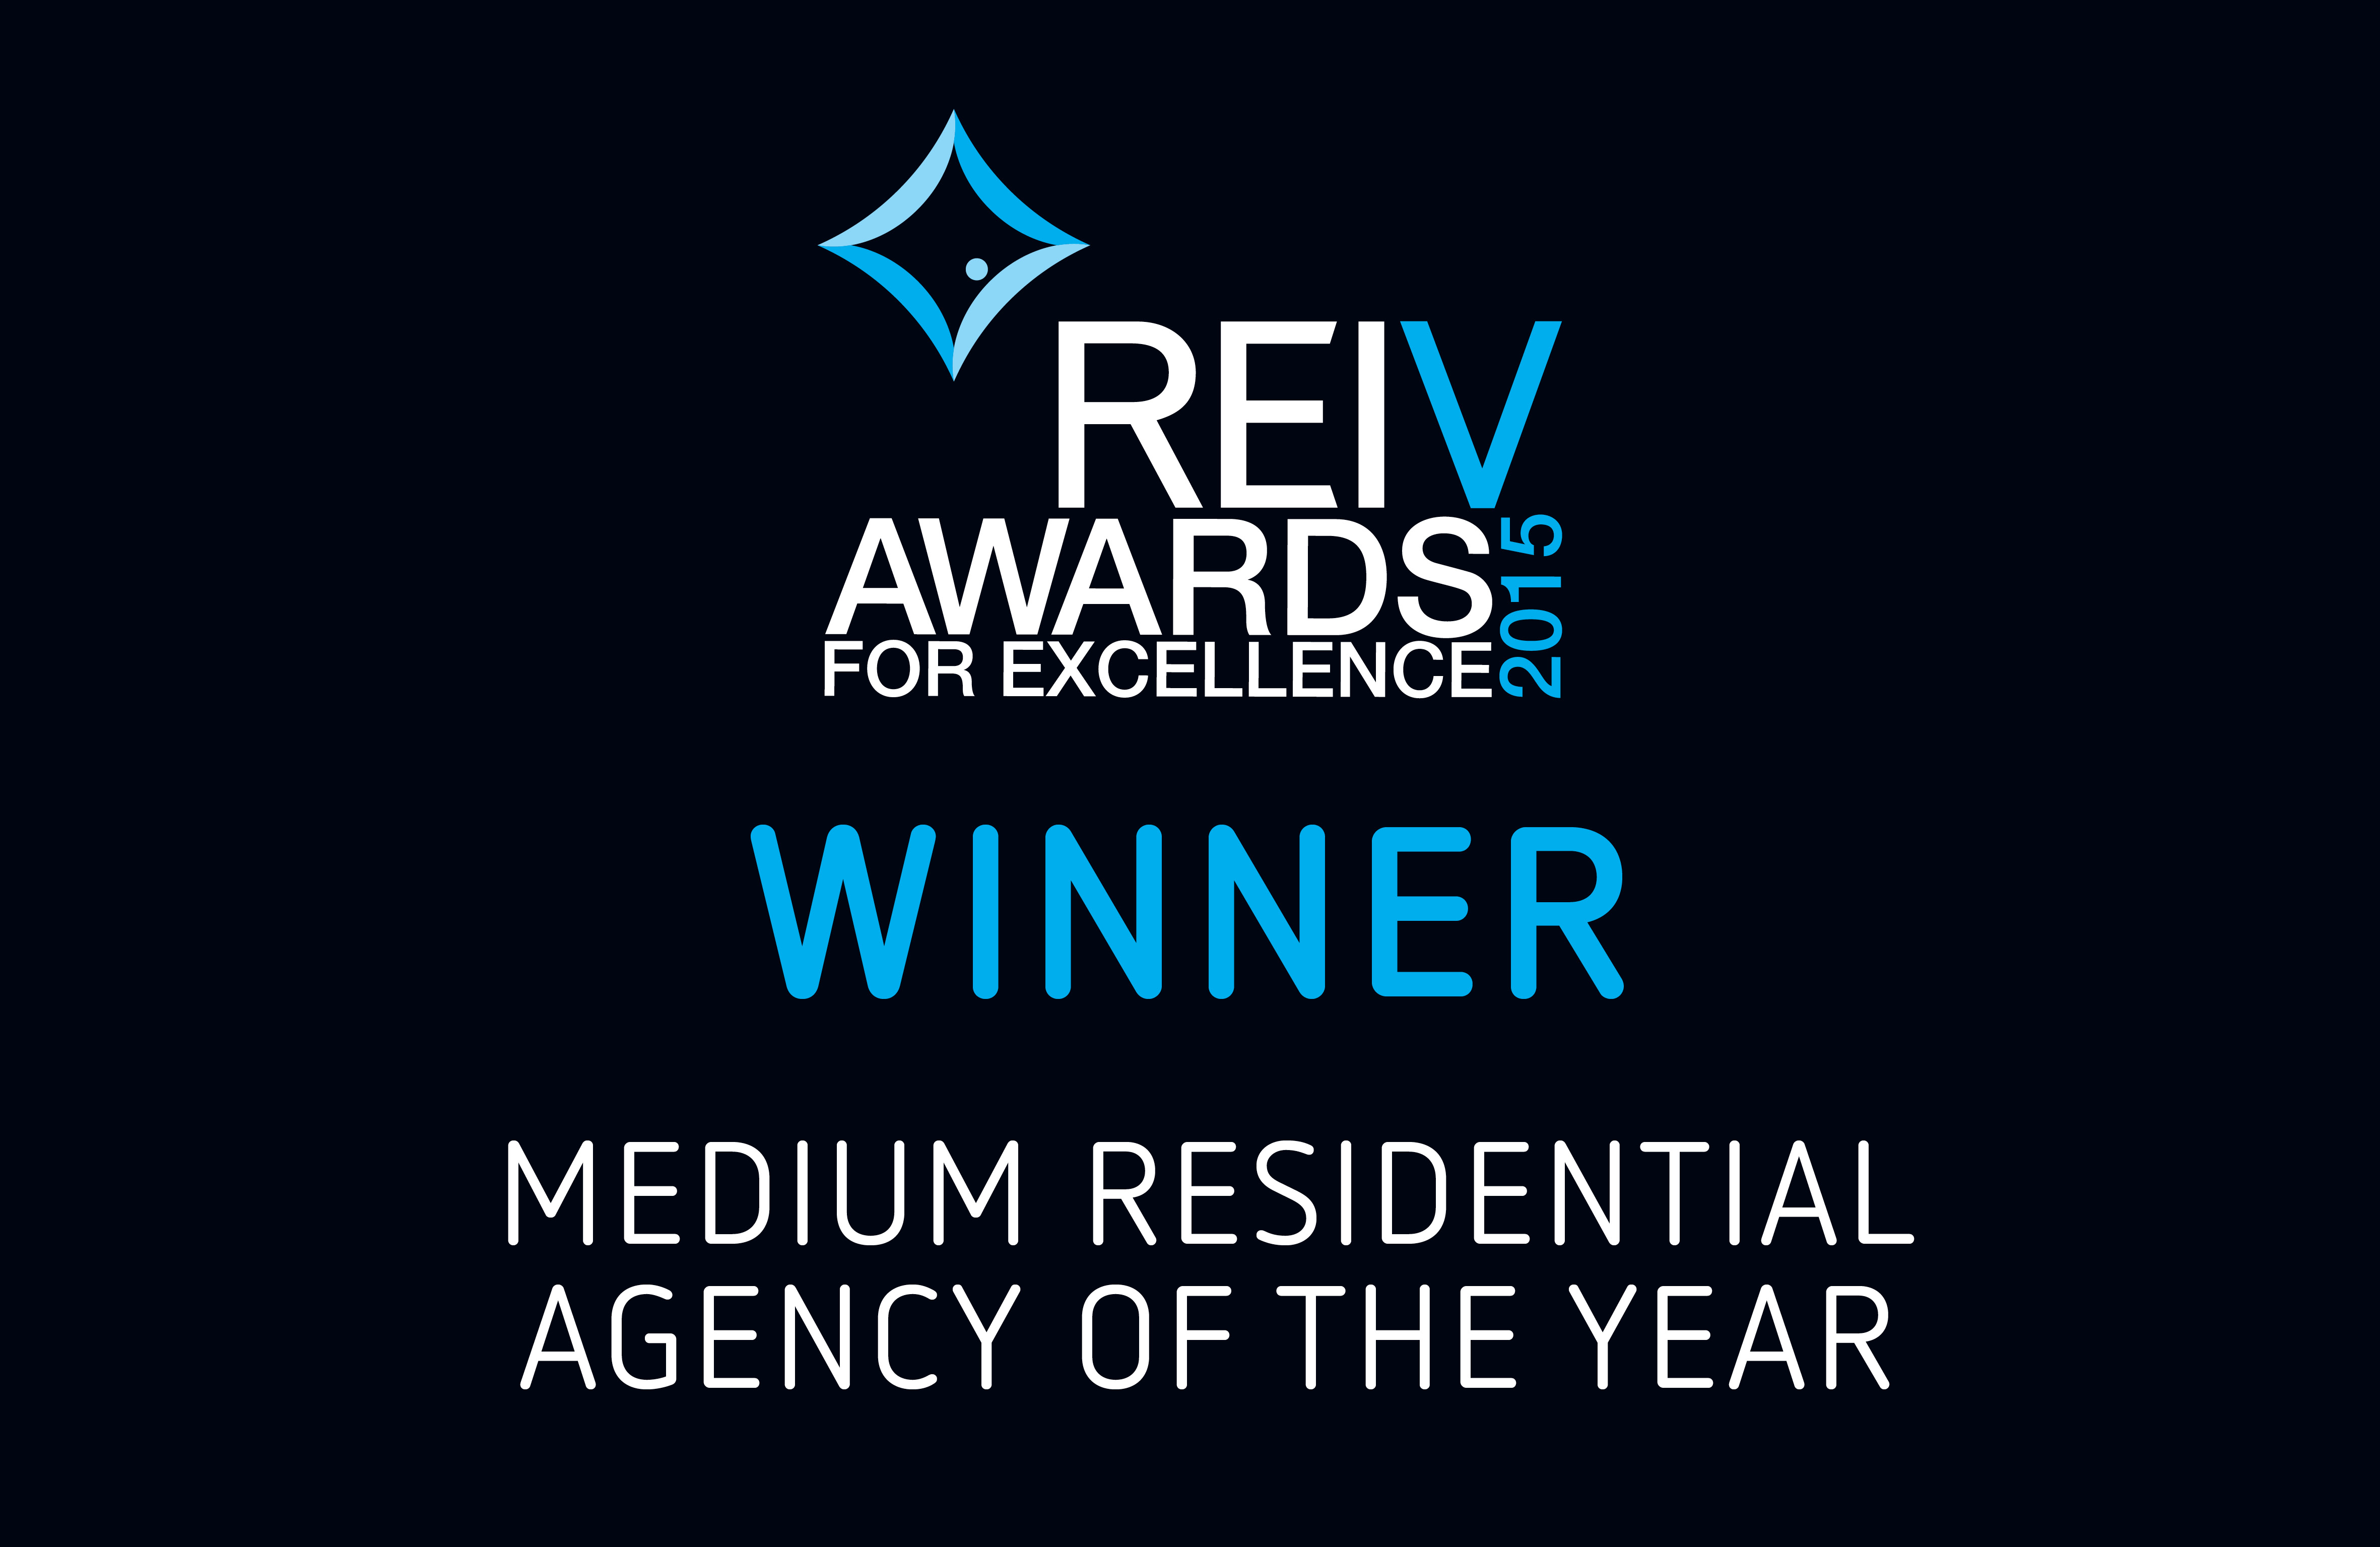 2010 - REIV Medium Residential Agency of the Year